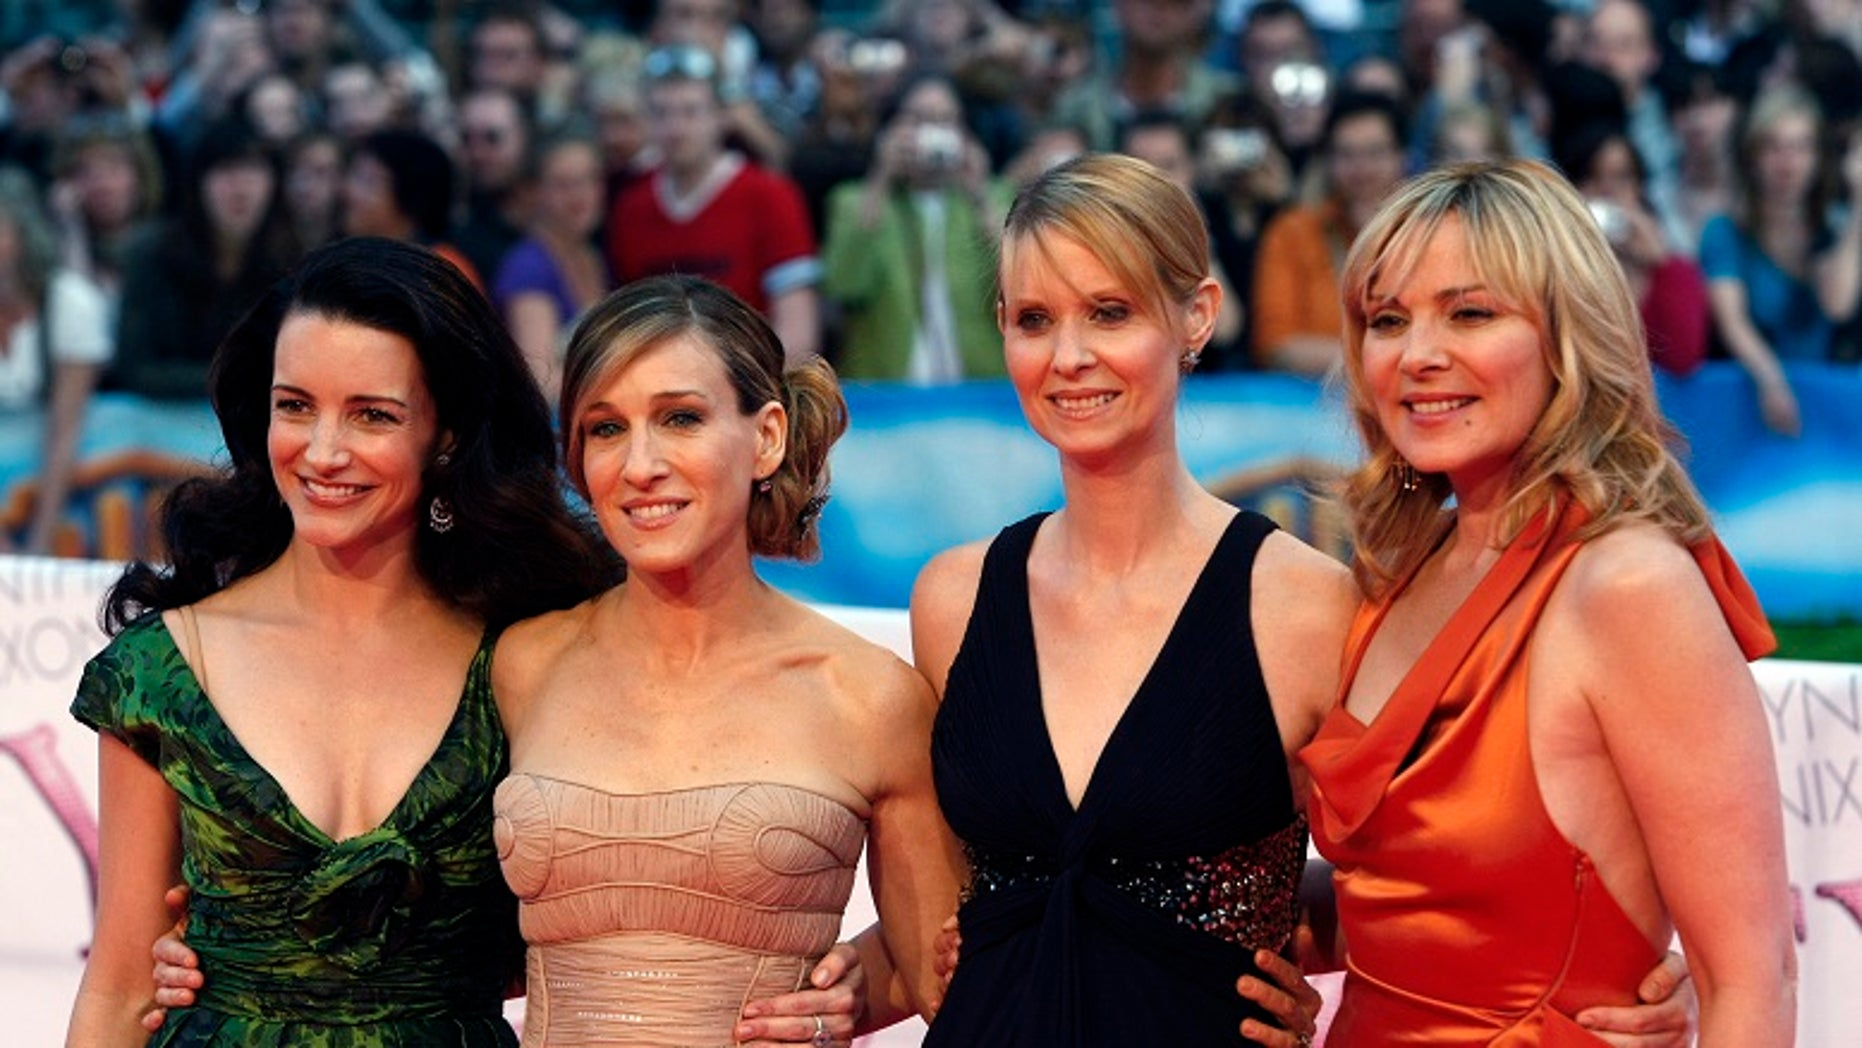 """Sex and the City"" co-stars from l-r: Kristin Davis, Sarah Jessica Parker, Cynthia Nixon and Kim Cattrall."